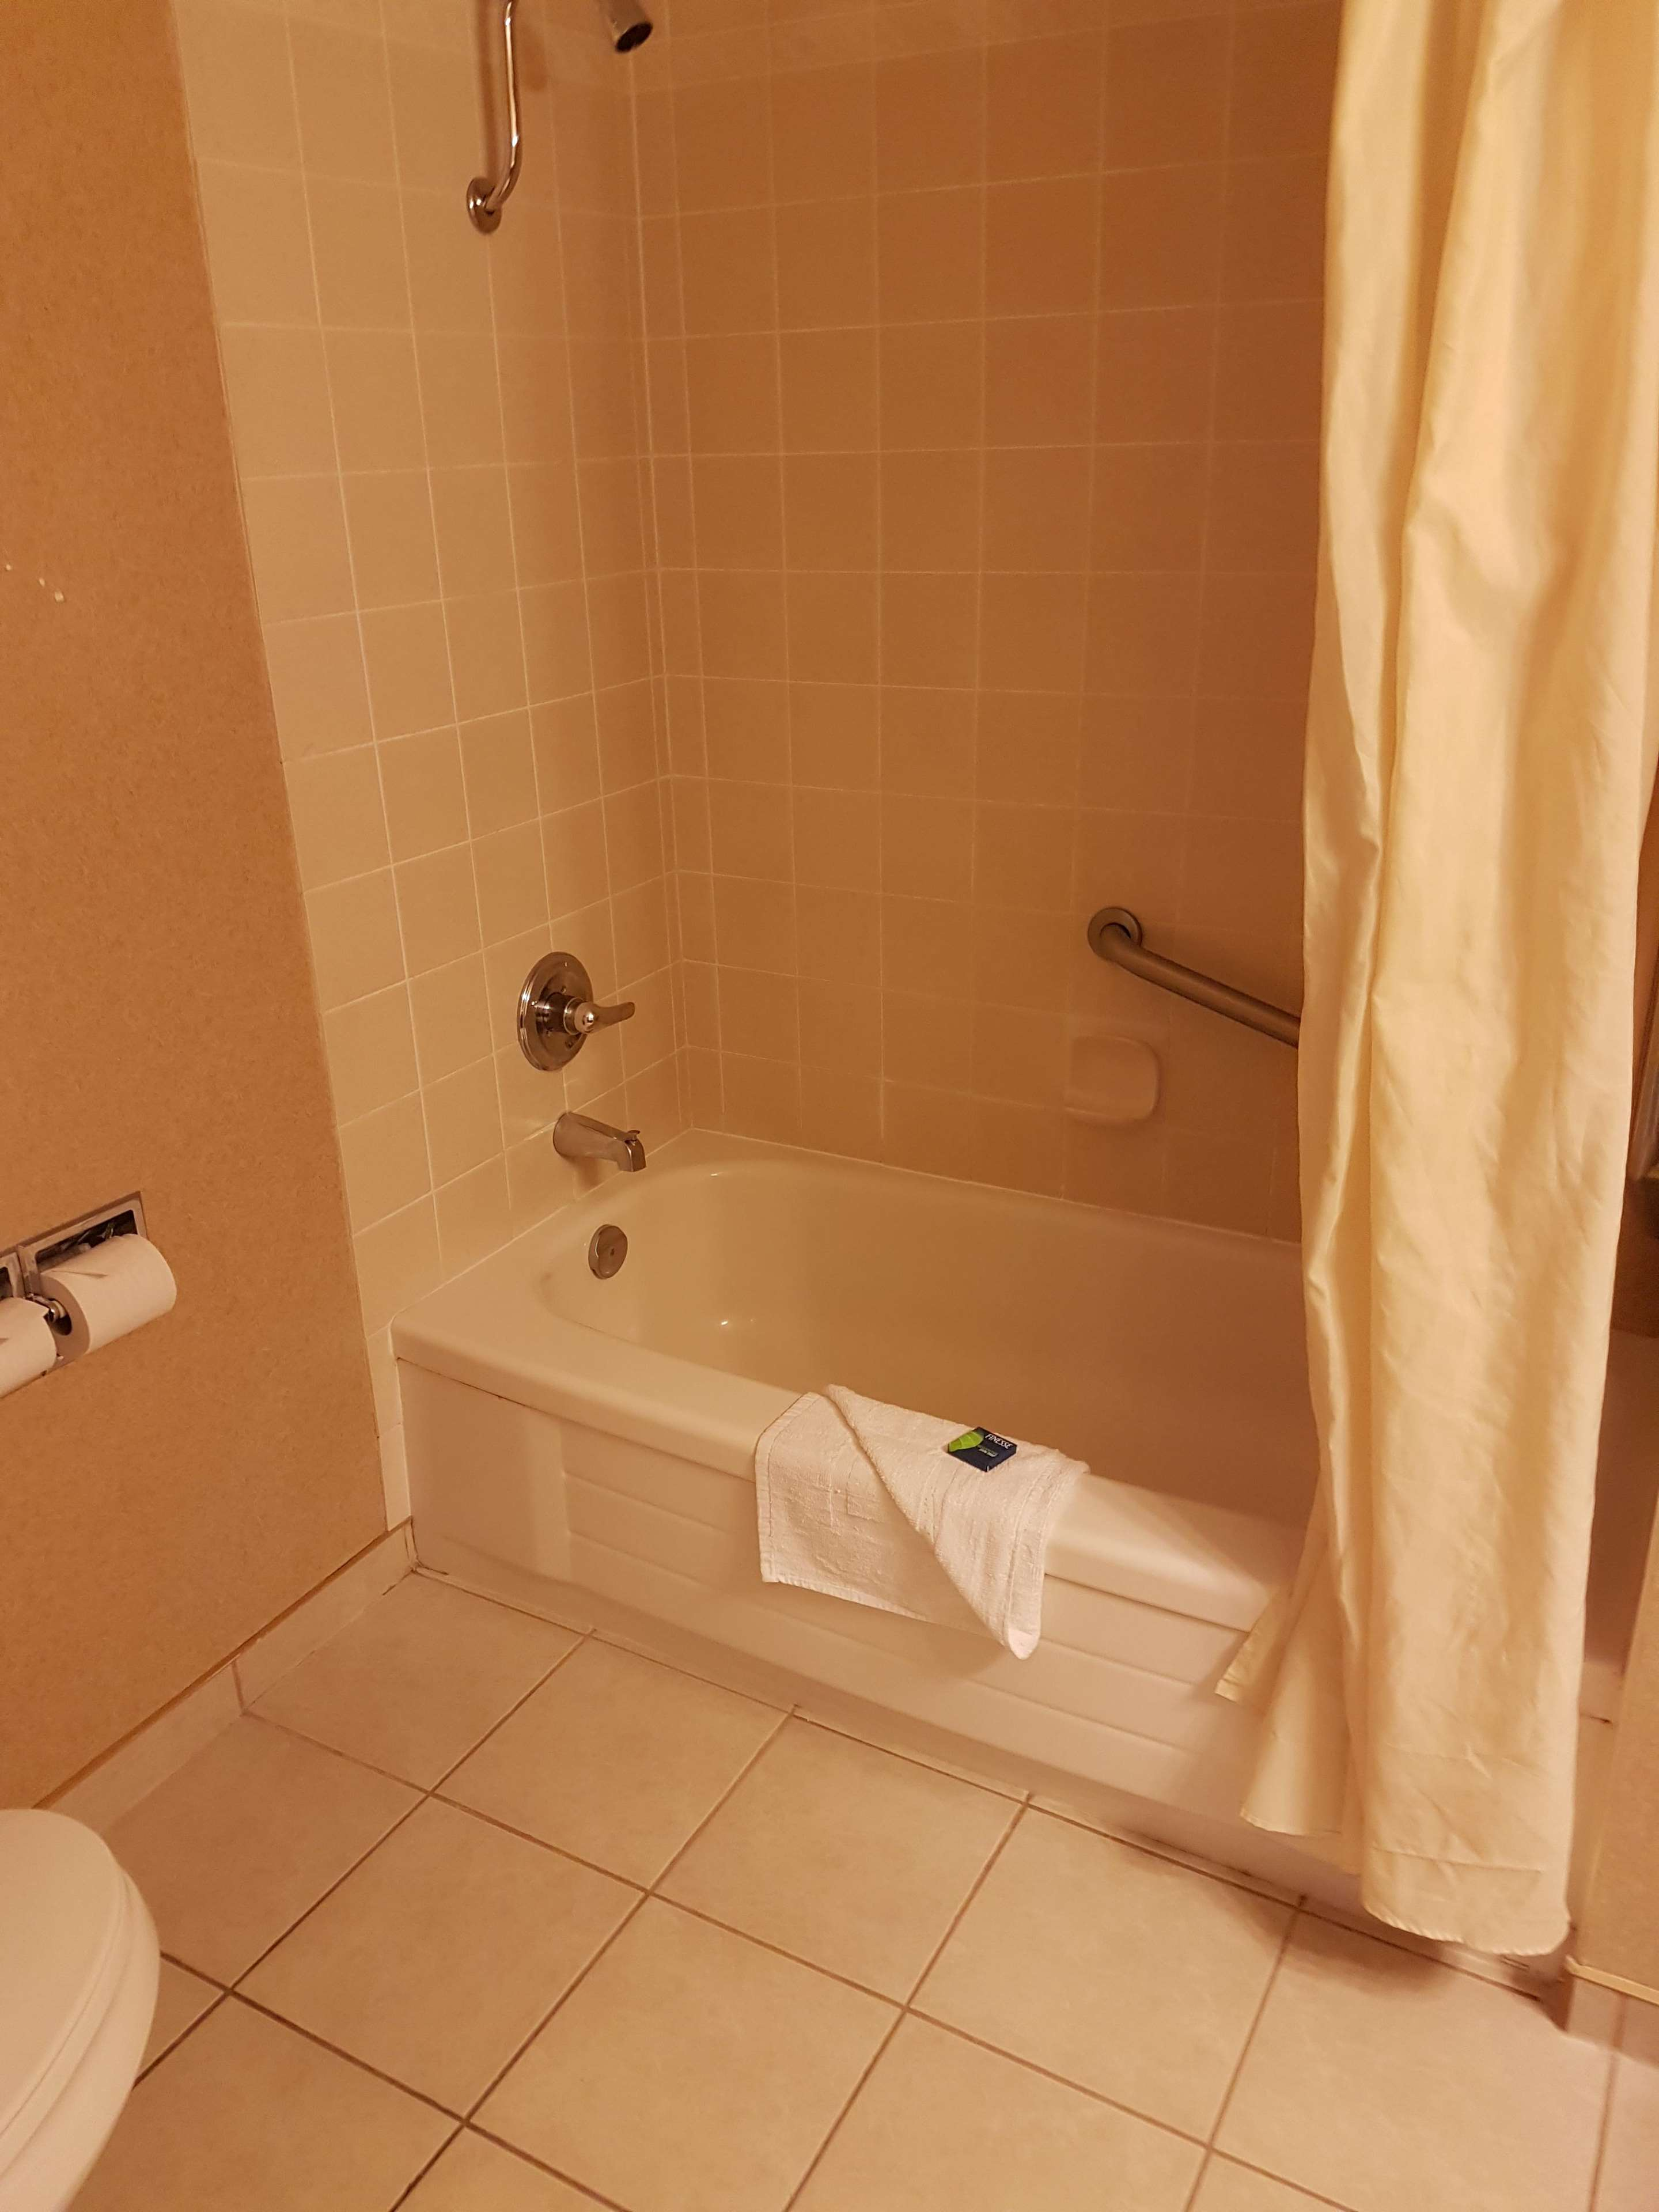 SureStay Plus Hotel by Best Western Coquitlam in Coquitlam: Mobility Accessible Bathroom